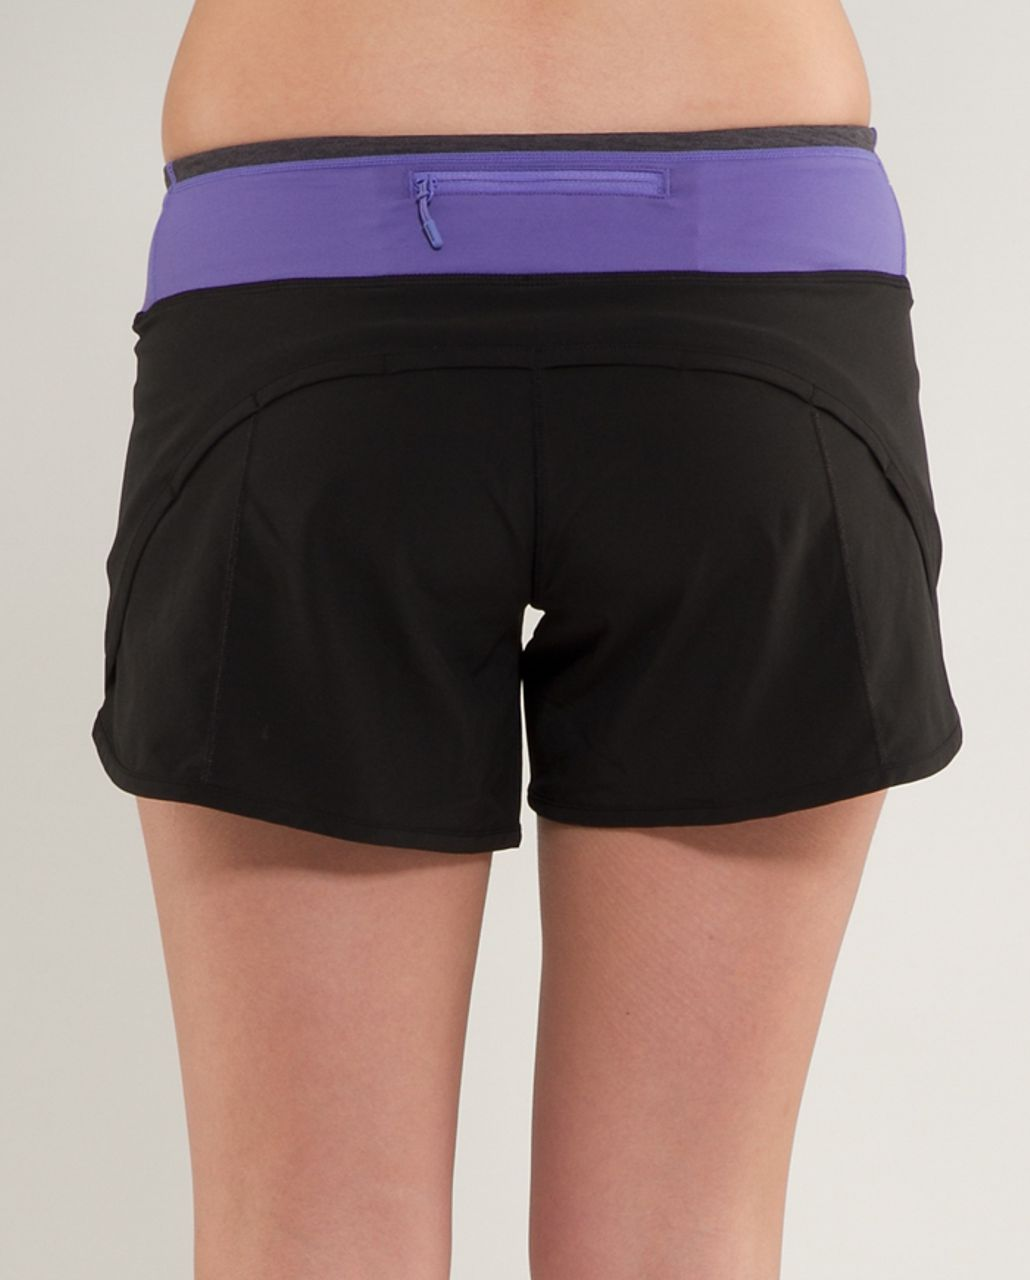 Lululemon Turbo Run Short - Black /  Persian Purple